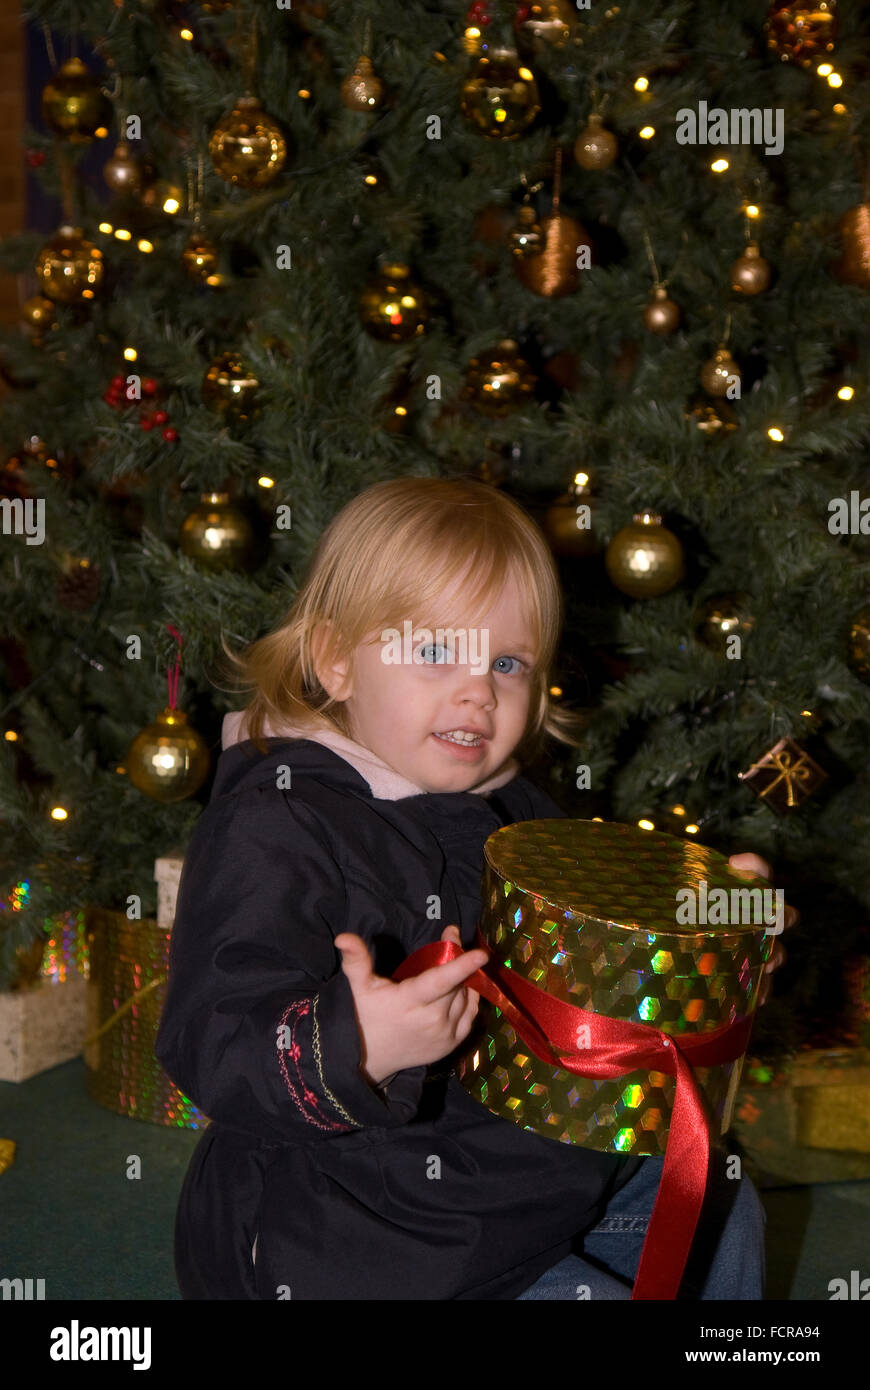 2 presents photos 2 presents images alamy - Noel fille 8 ans ...